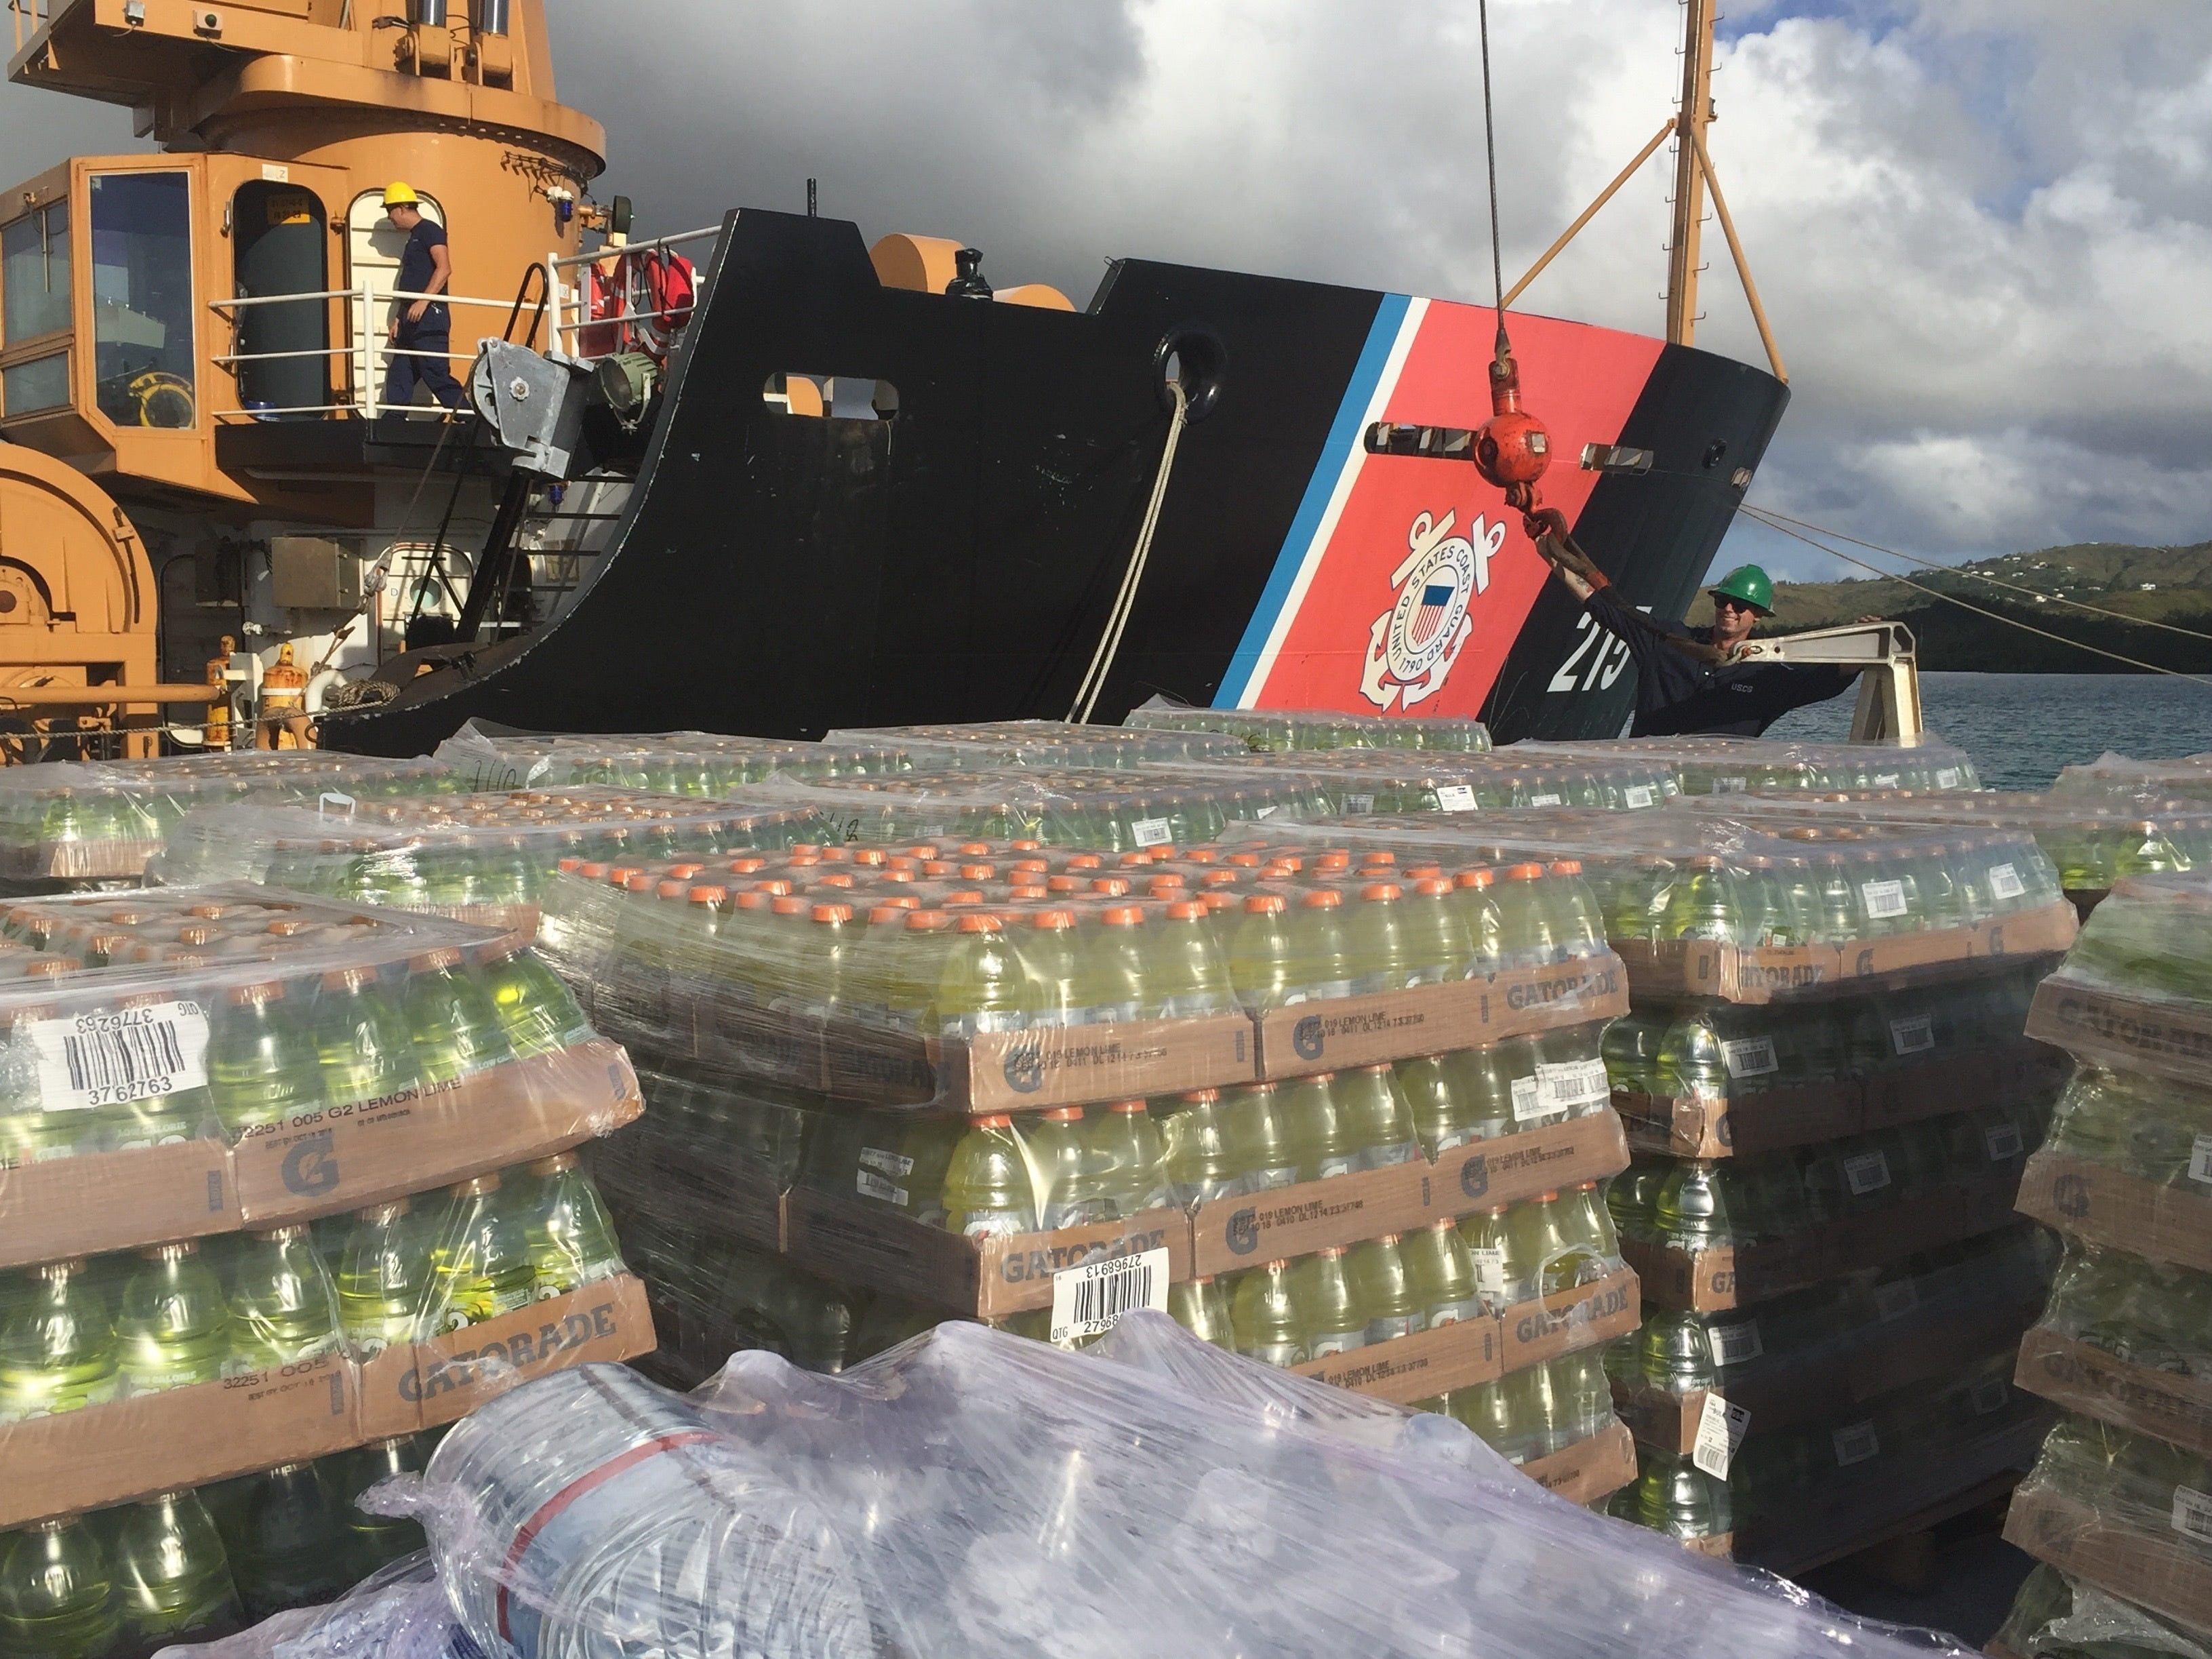 Crewmembers from U.S. Coast Guard Cutter Sequoia (WLB 215), based out of Guam, load the vessel with supplies to take to Saipan, Oct. 26, 2018. The crew will be transporting donated goods from the community to those effected by Typhoon Yutu.